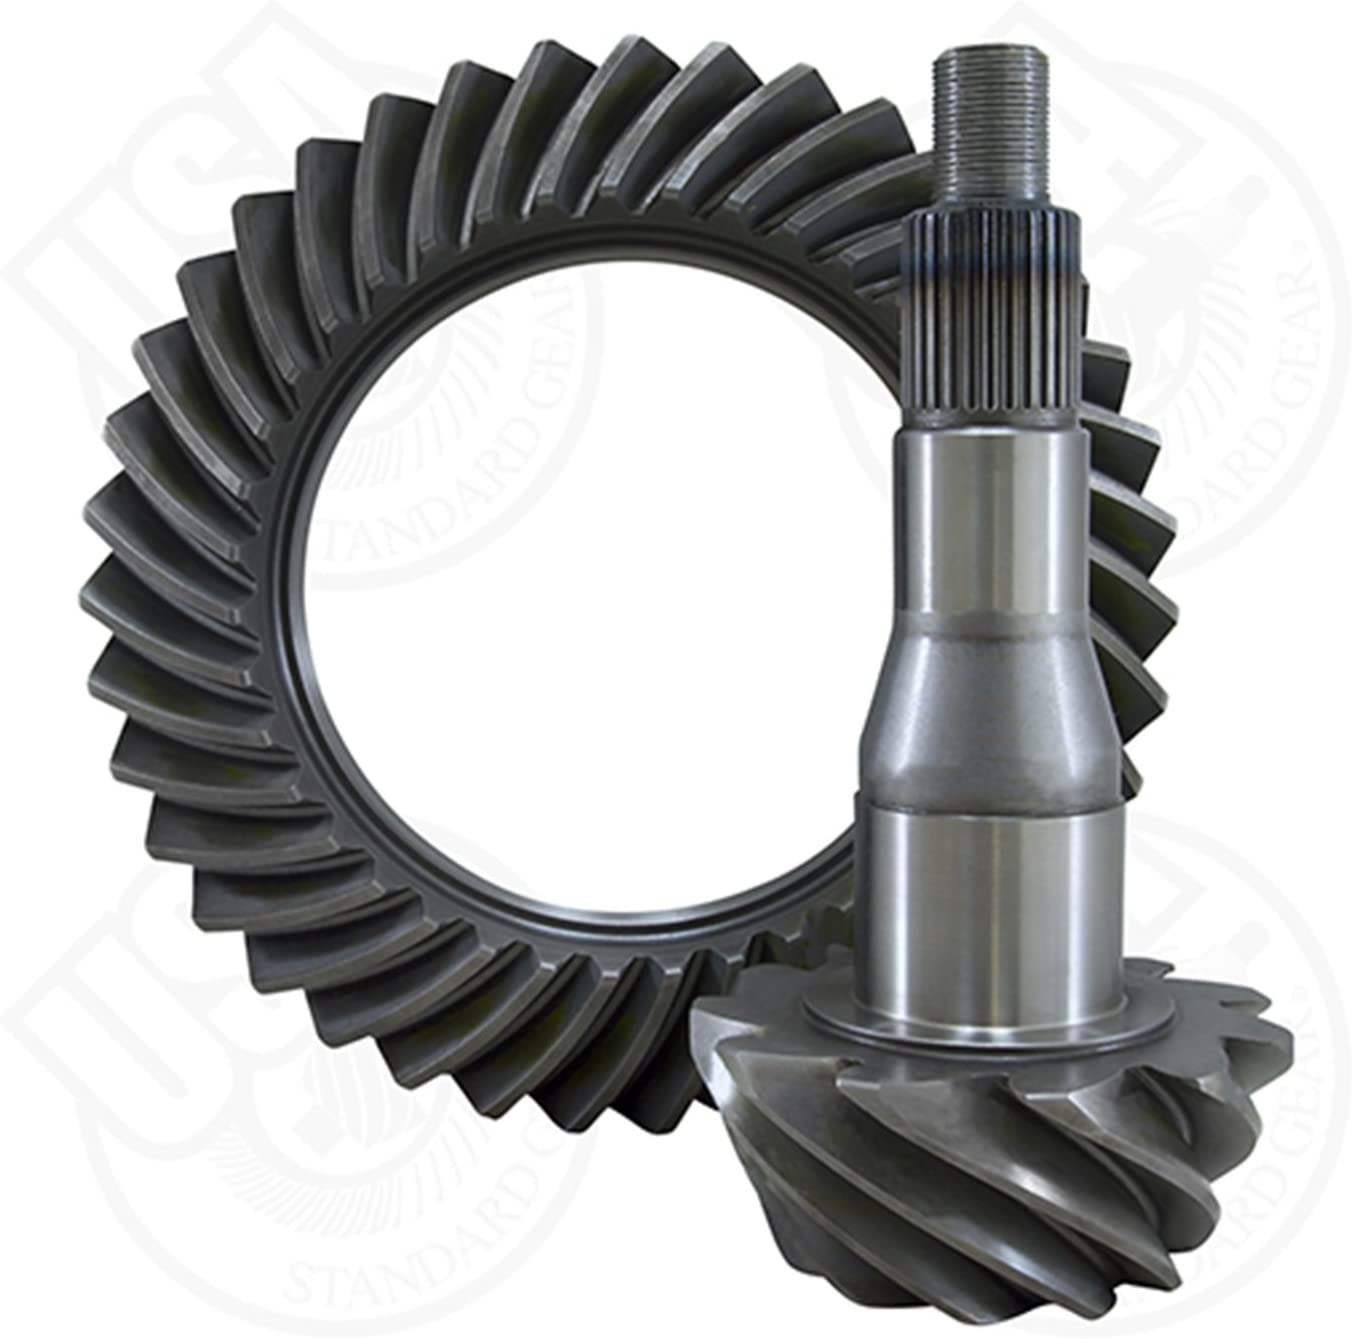 ZG F9-513 Ring /& Pinion Gear Set for Ford 9 Differential USA Standard Gear